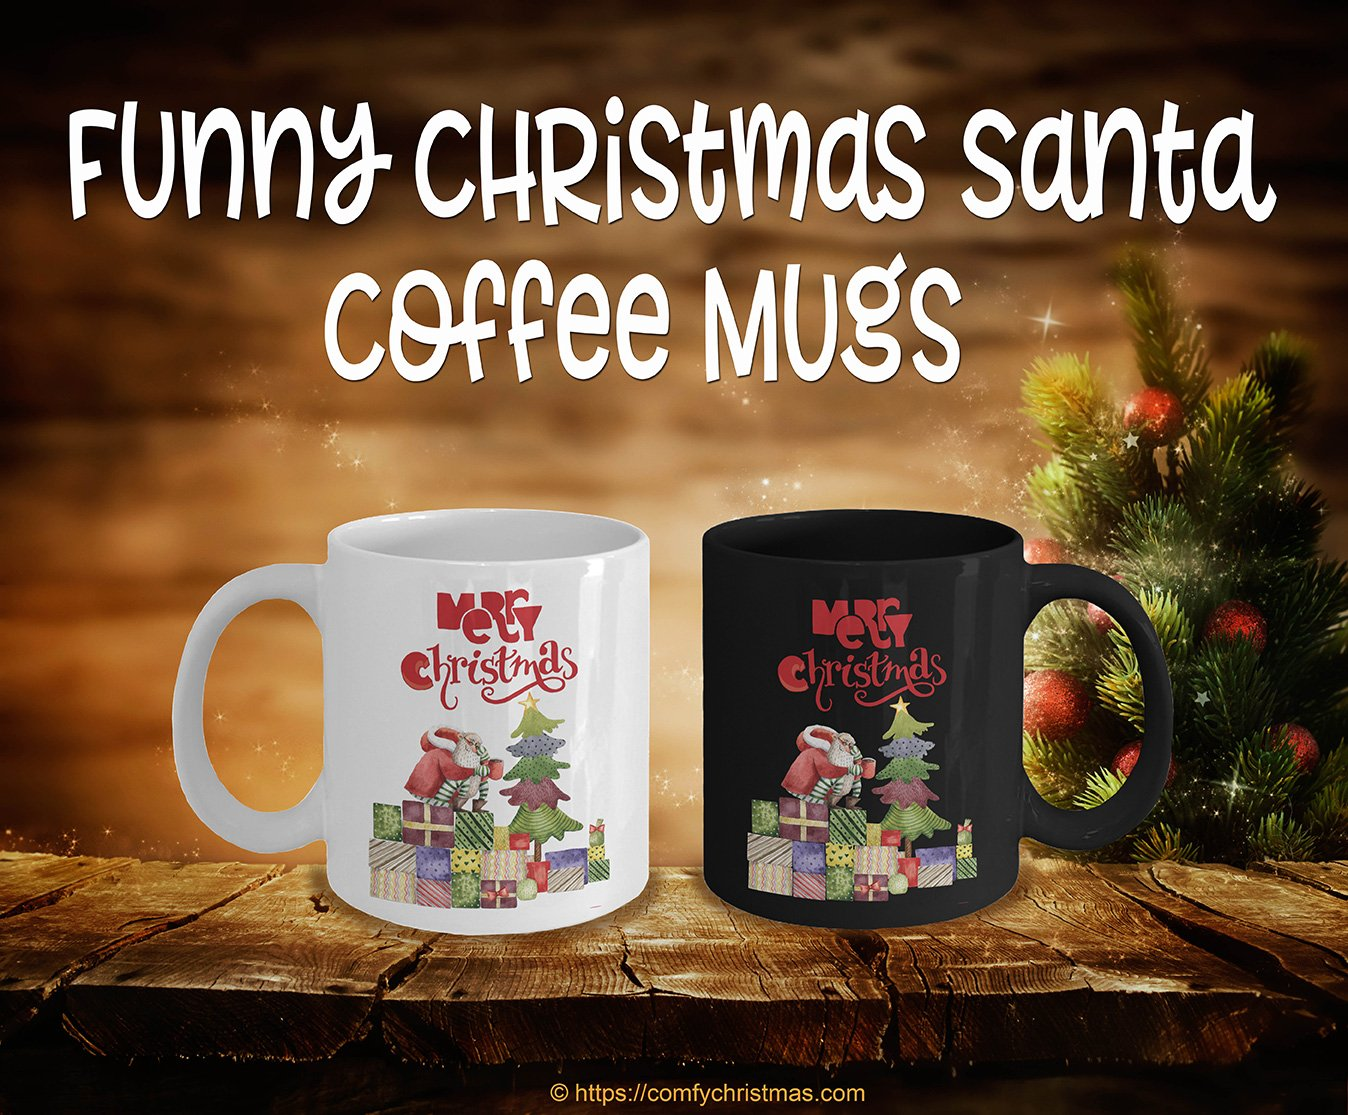 Funny Christmas Santa Coffee Mugs